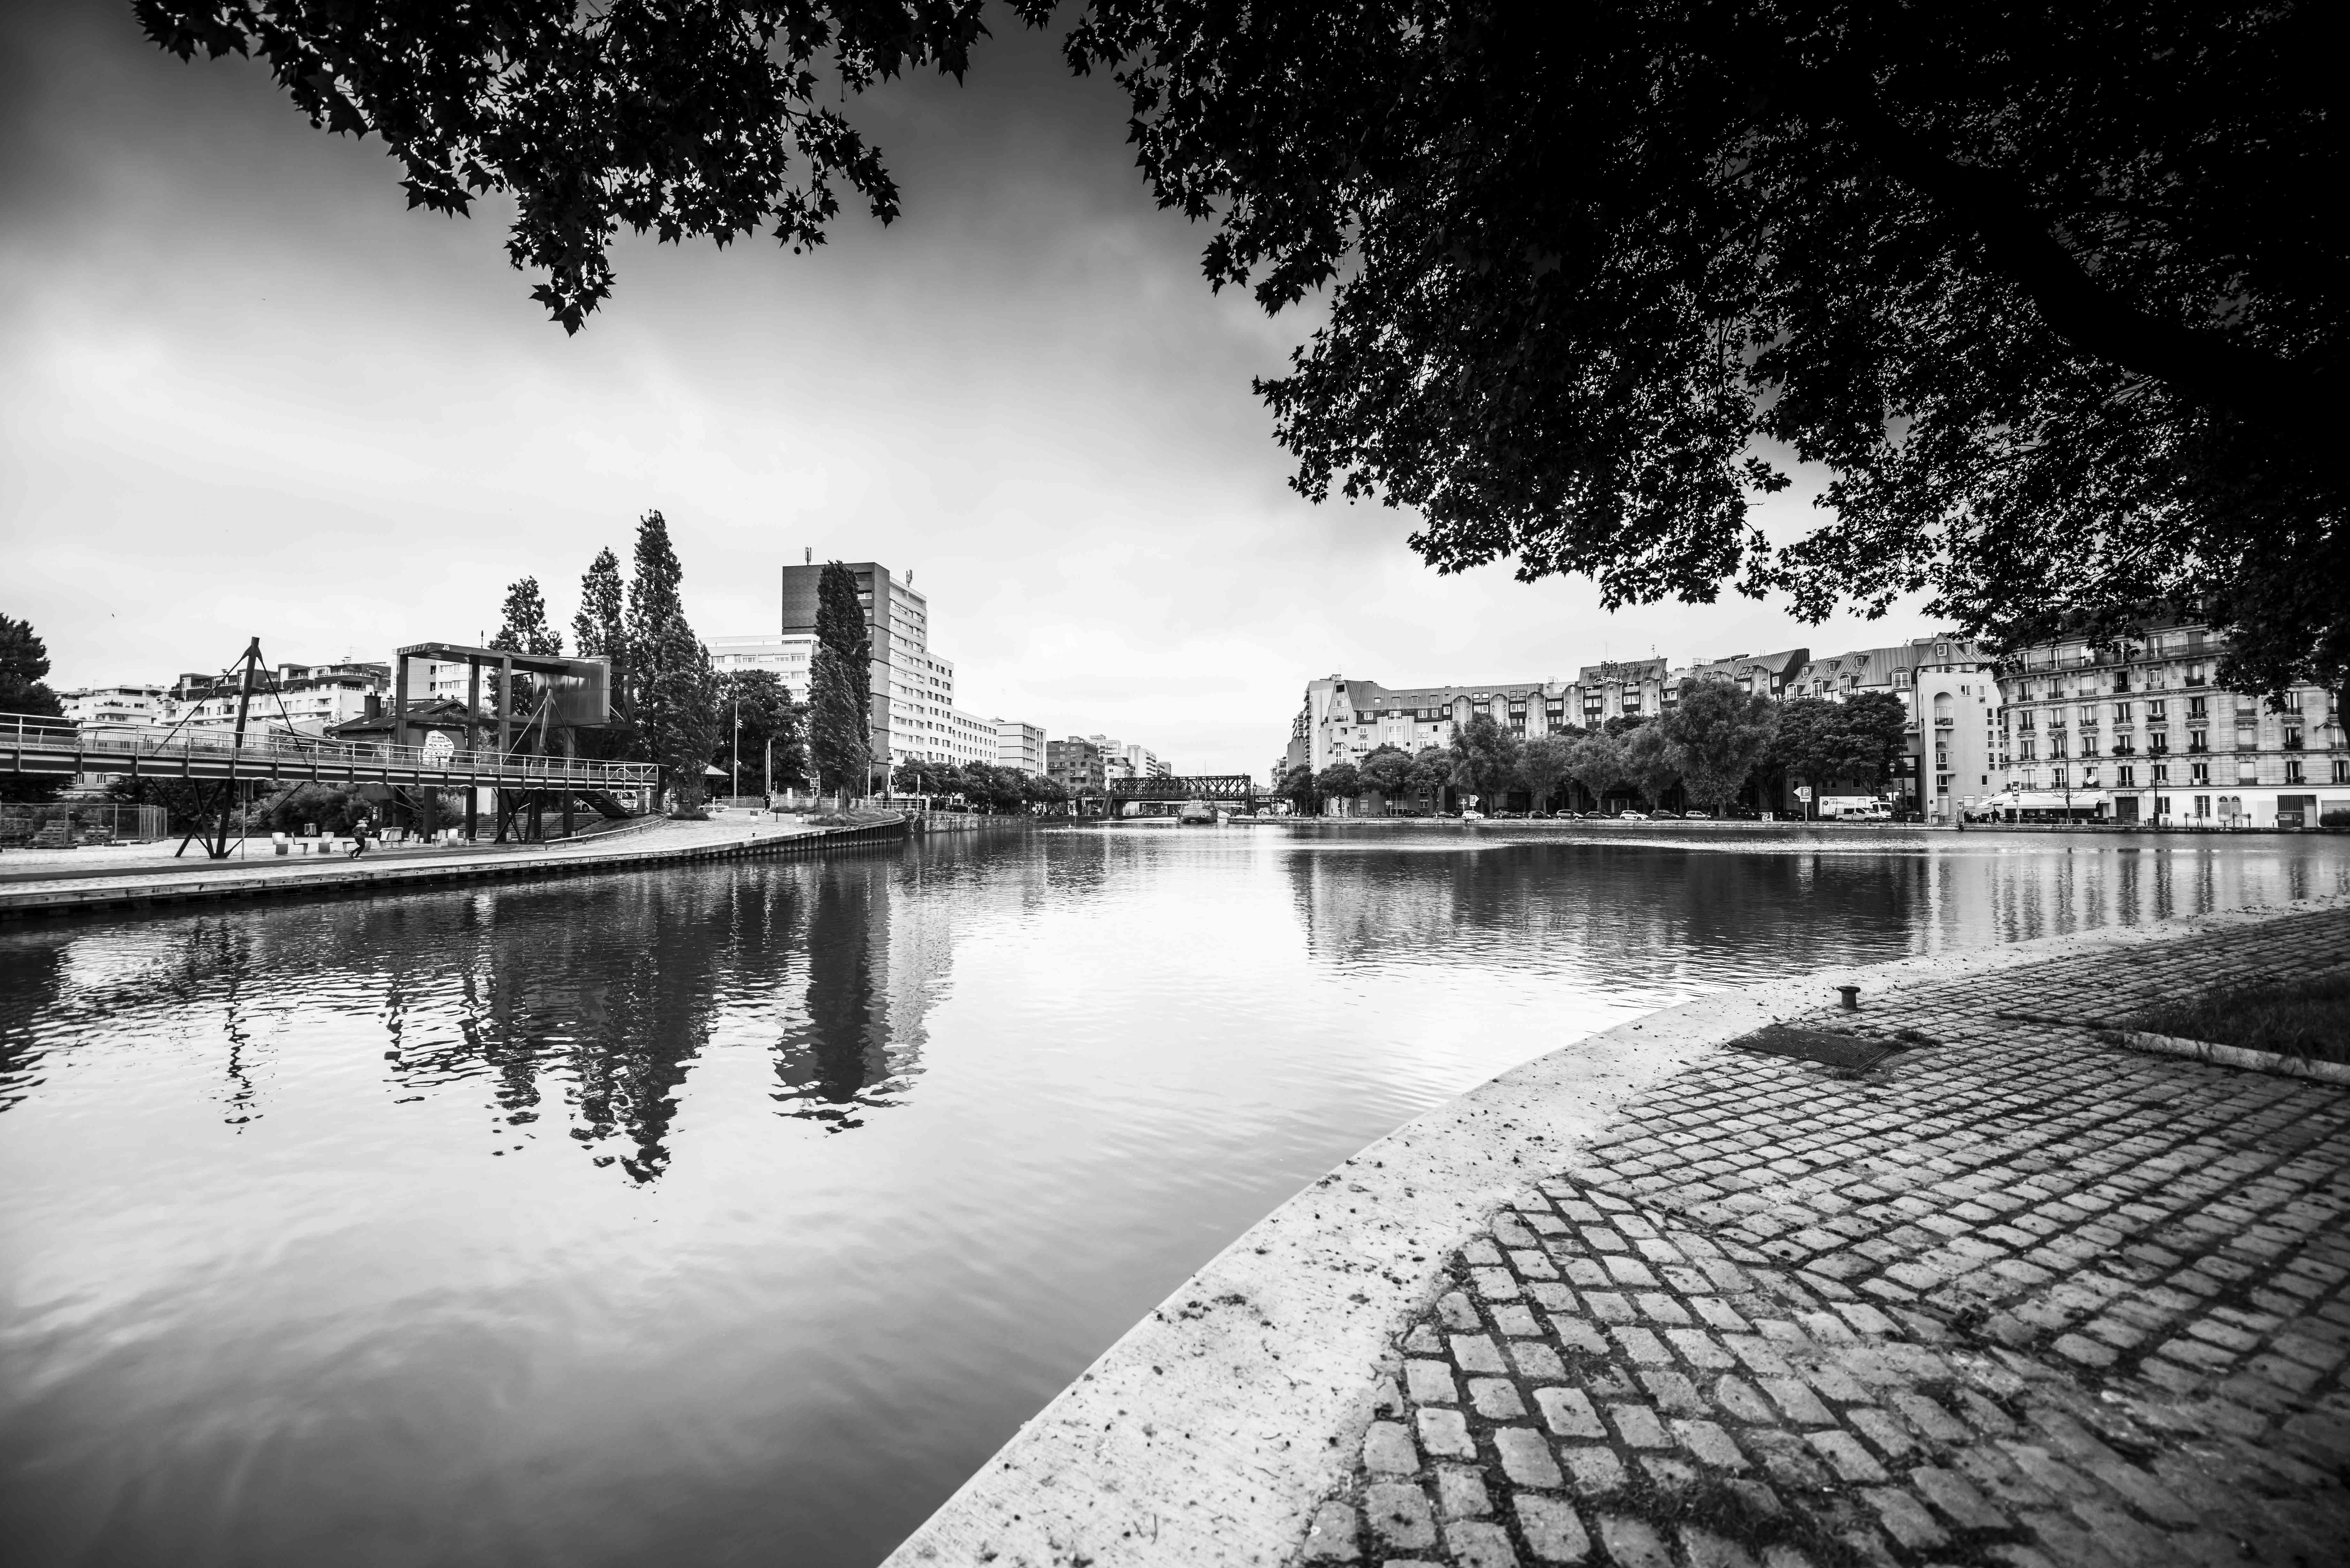 Quai de la Marne - Paris - France